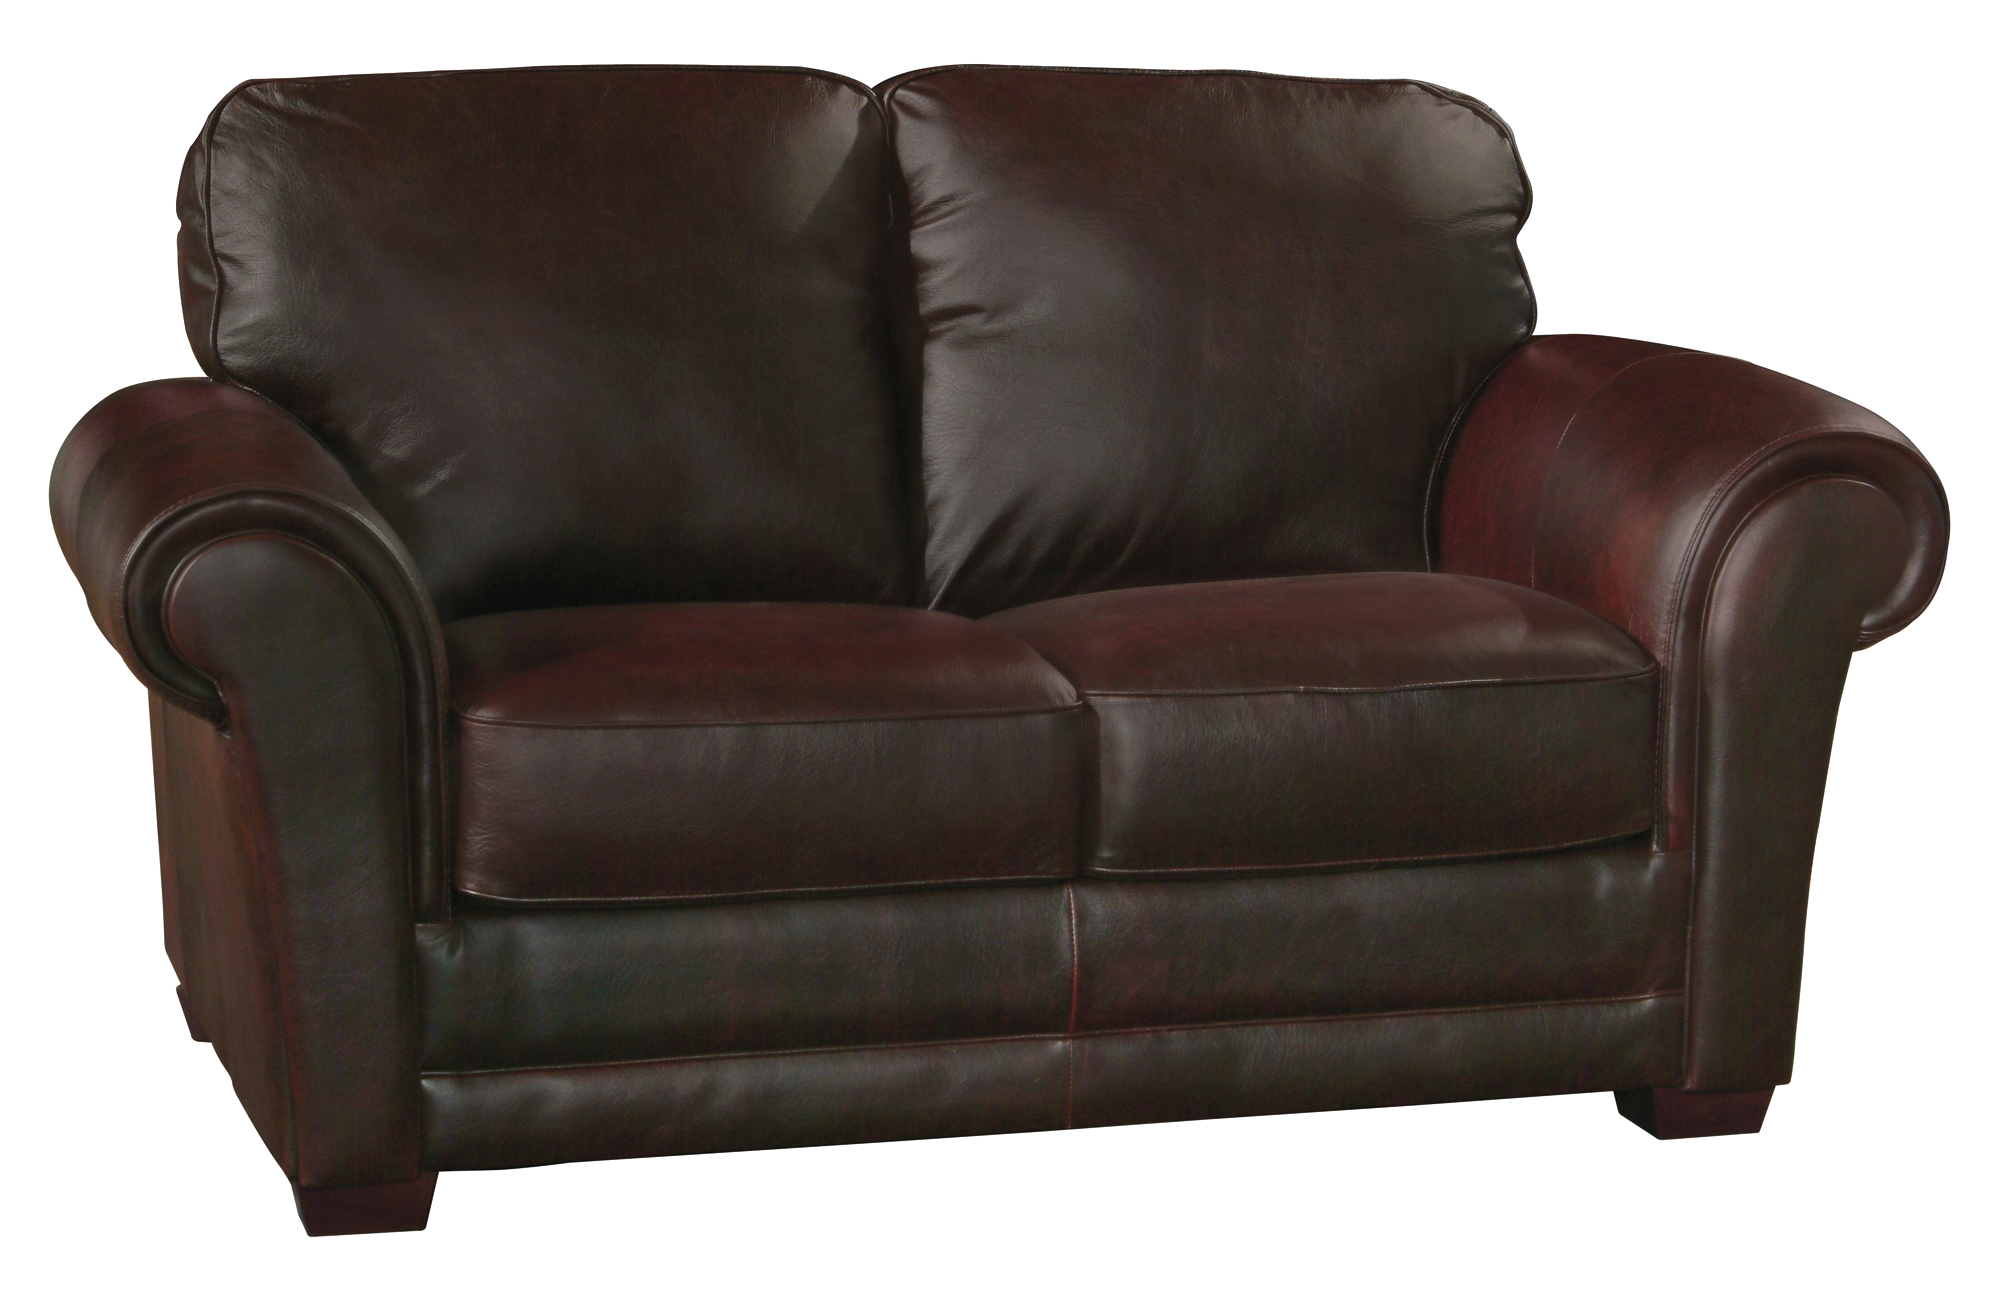 New Luke Leather Mark Italian Leather Distressed Chocolate Brown Sofa Only Ebay